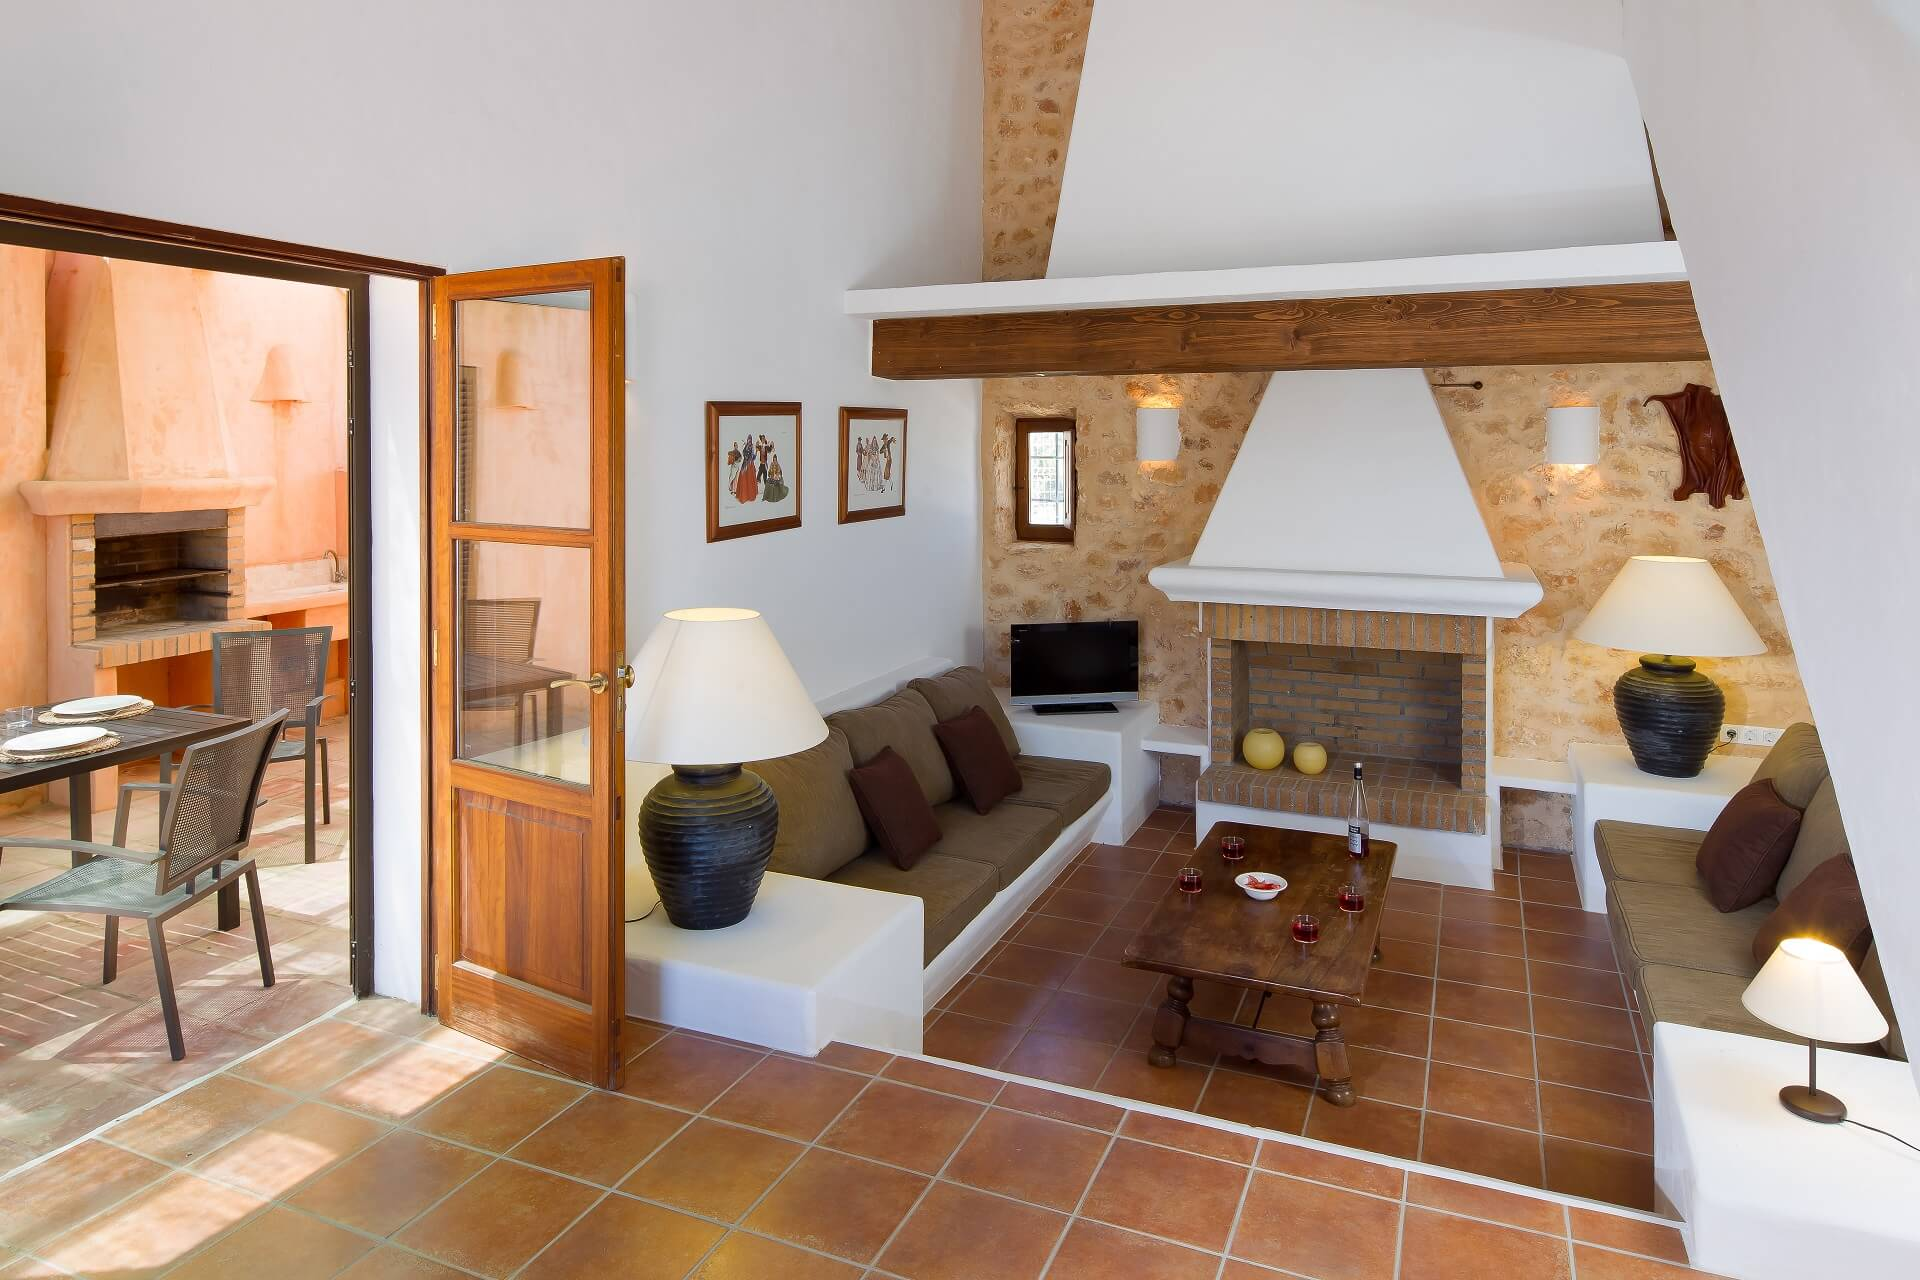 Villa CASES N3 - Living area with fireplace